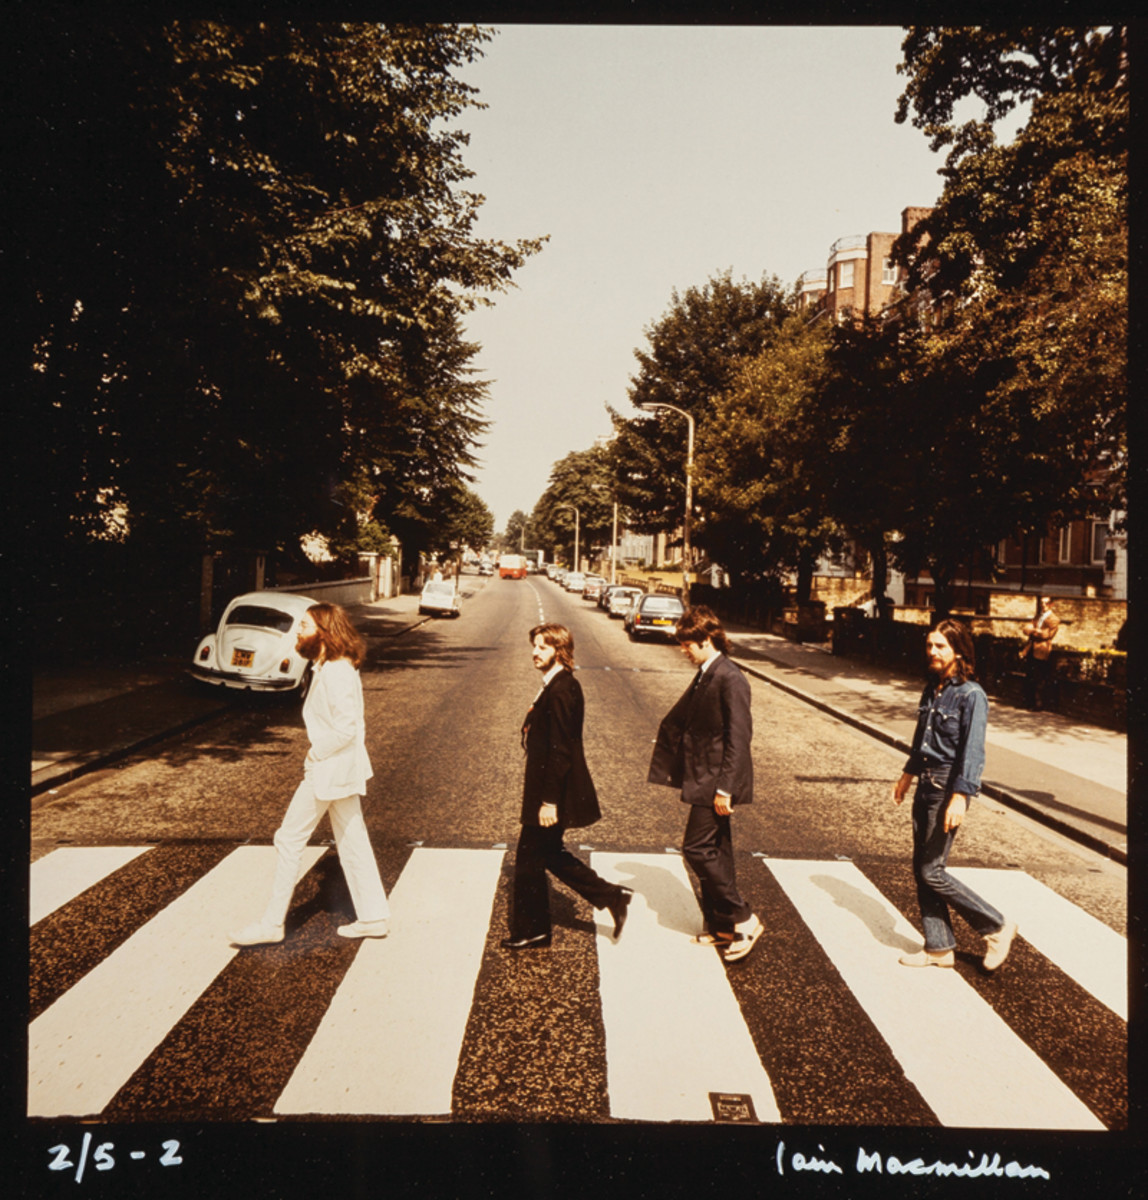 One of the six rare alternate photo outtakes of the Abbey Road cover. The set of six sold for $62,500 at auction in 2016 via Heritage Auctions. The set was originally owned by an executive at the Capitol/Apple Offices in New York City. Image courtesy of Heritage Auctions.